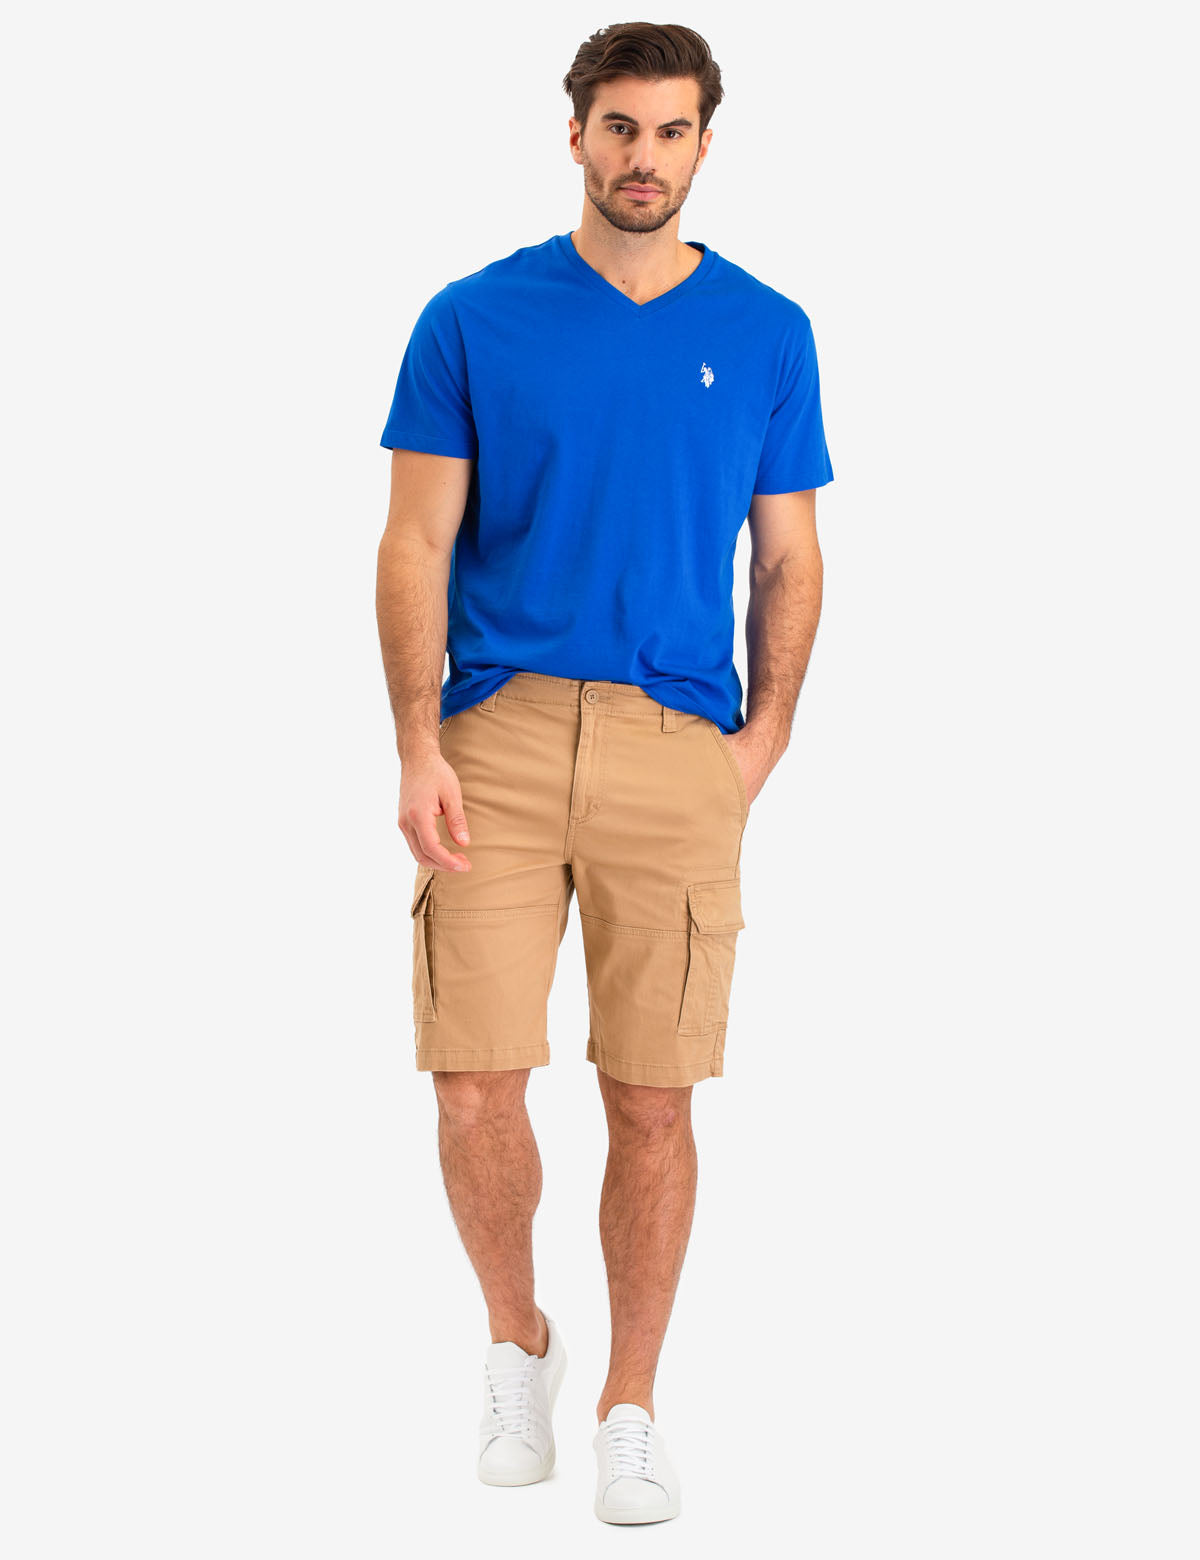 CARGO STRETCH TWILL SHORTS - U.S. Polo Assn.